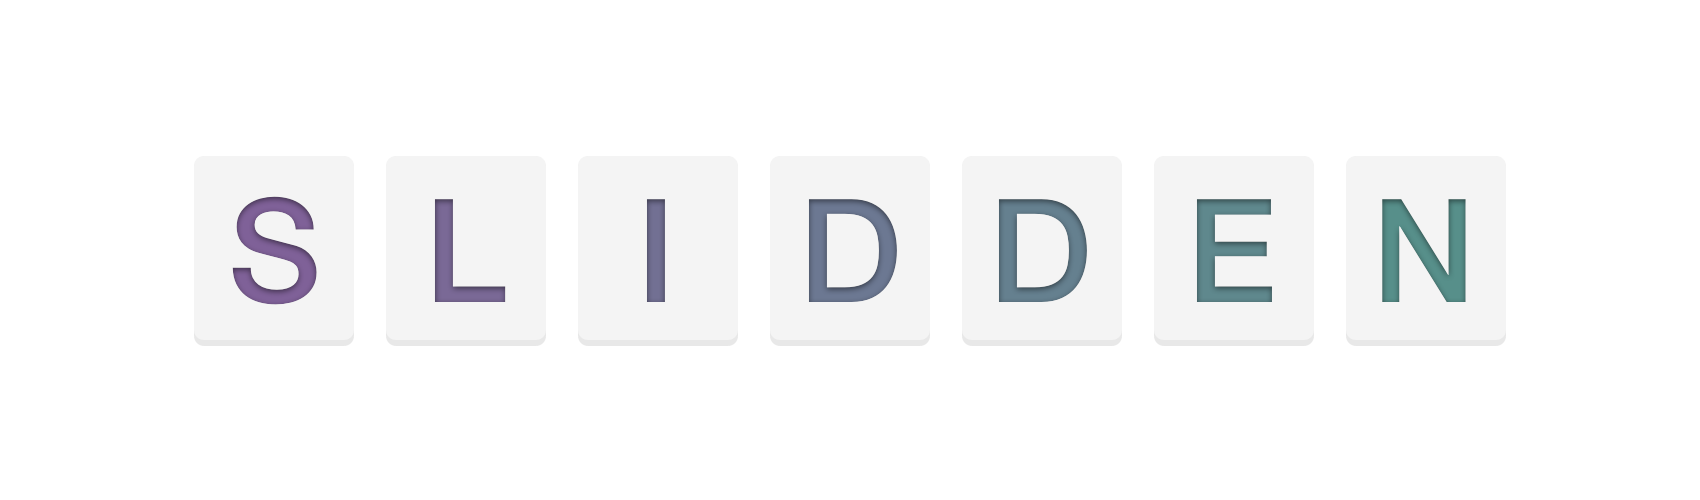 Slidden: An open source, customizable, iOS 8 keyboard written in Swift.